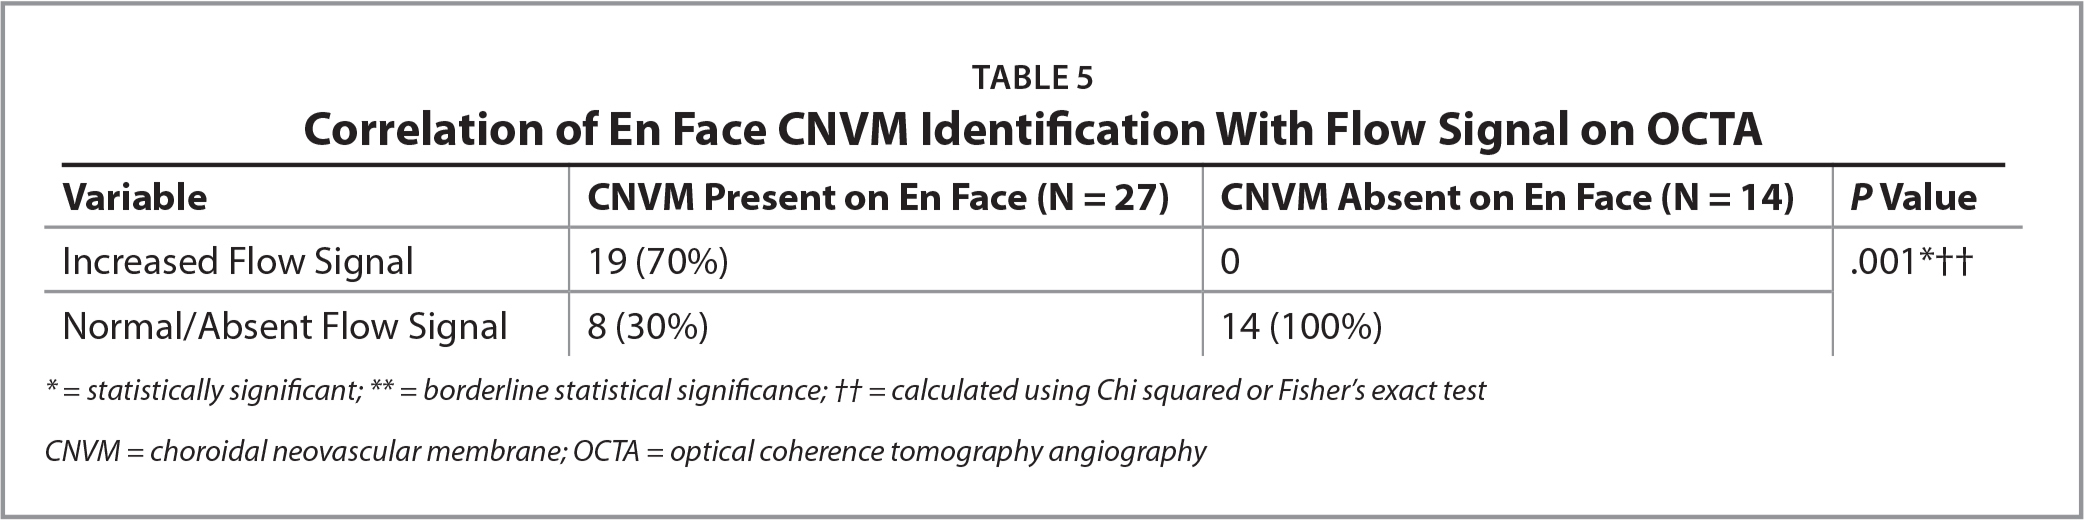 Correlation of En Face CNVM Identification With Flow Signal on OCTA